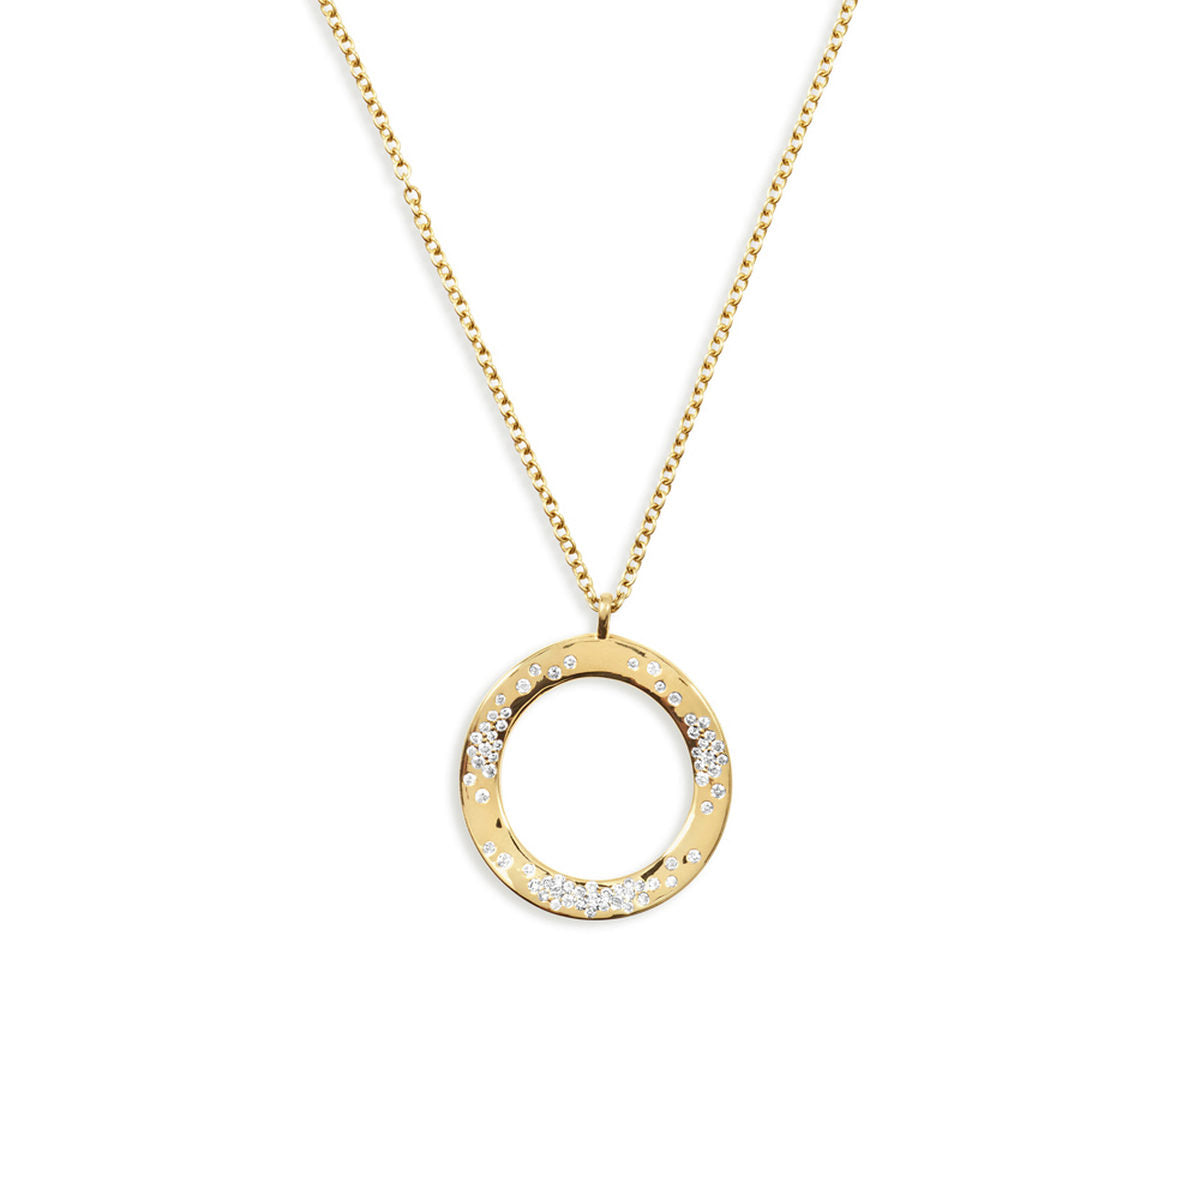 IPPOLITA Stardust 18K Yellow Gold Wavy Circle Pendant Necklace with Diamonds